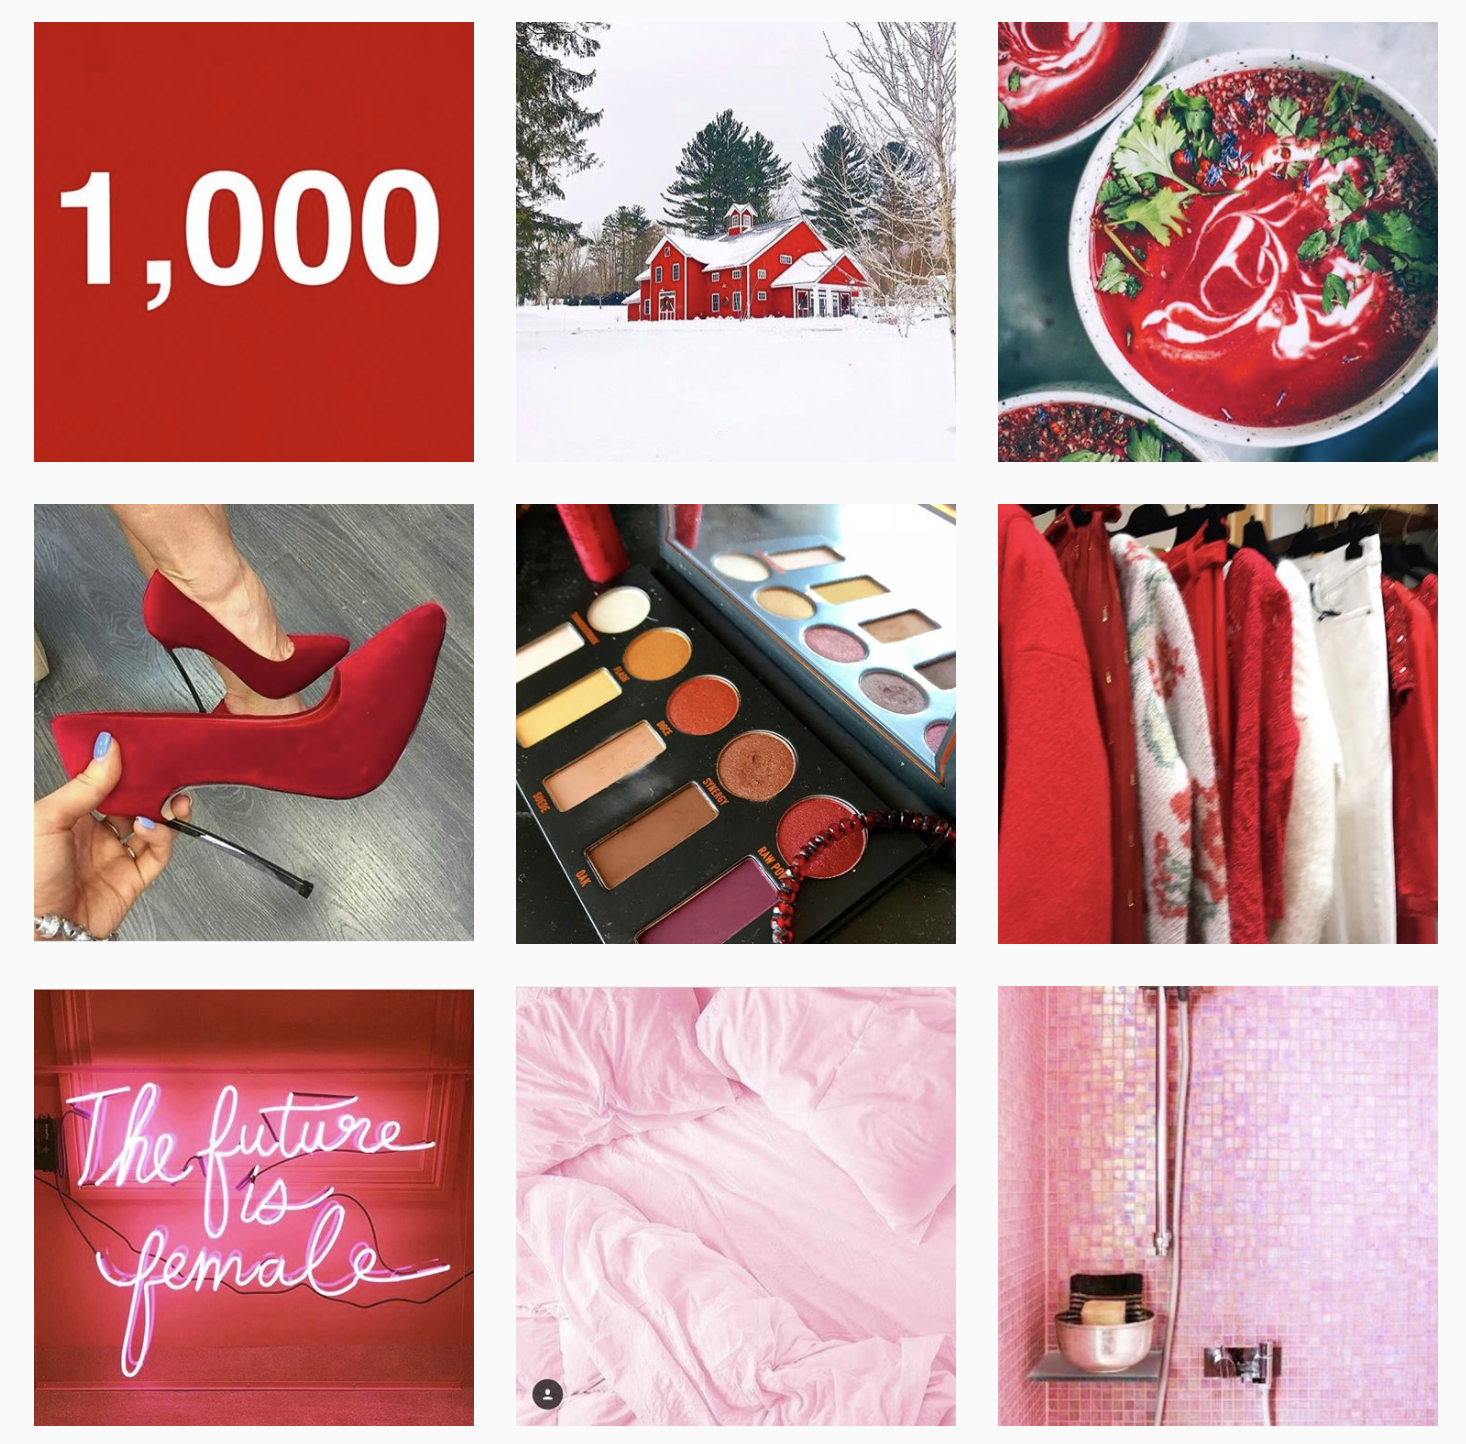 9 Brilliant Instagram Feed Ideas That Can Make Your Profile